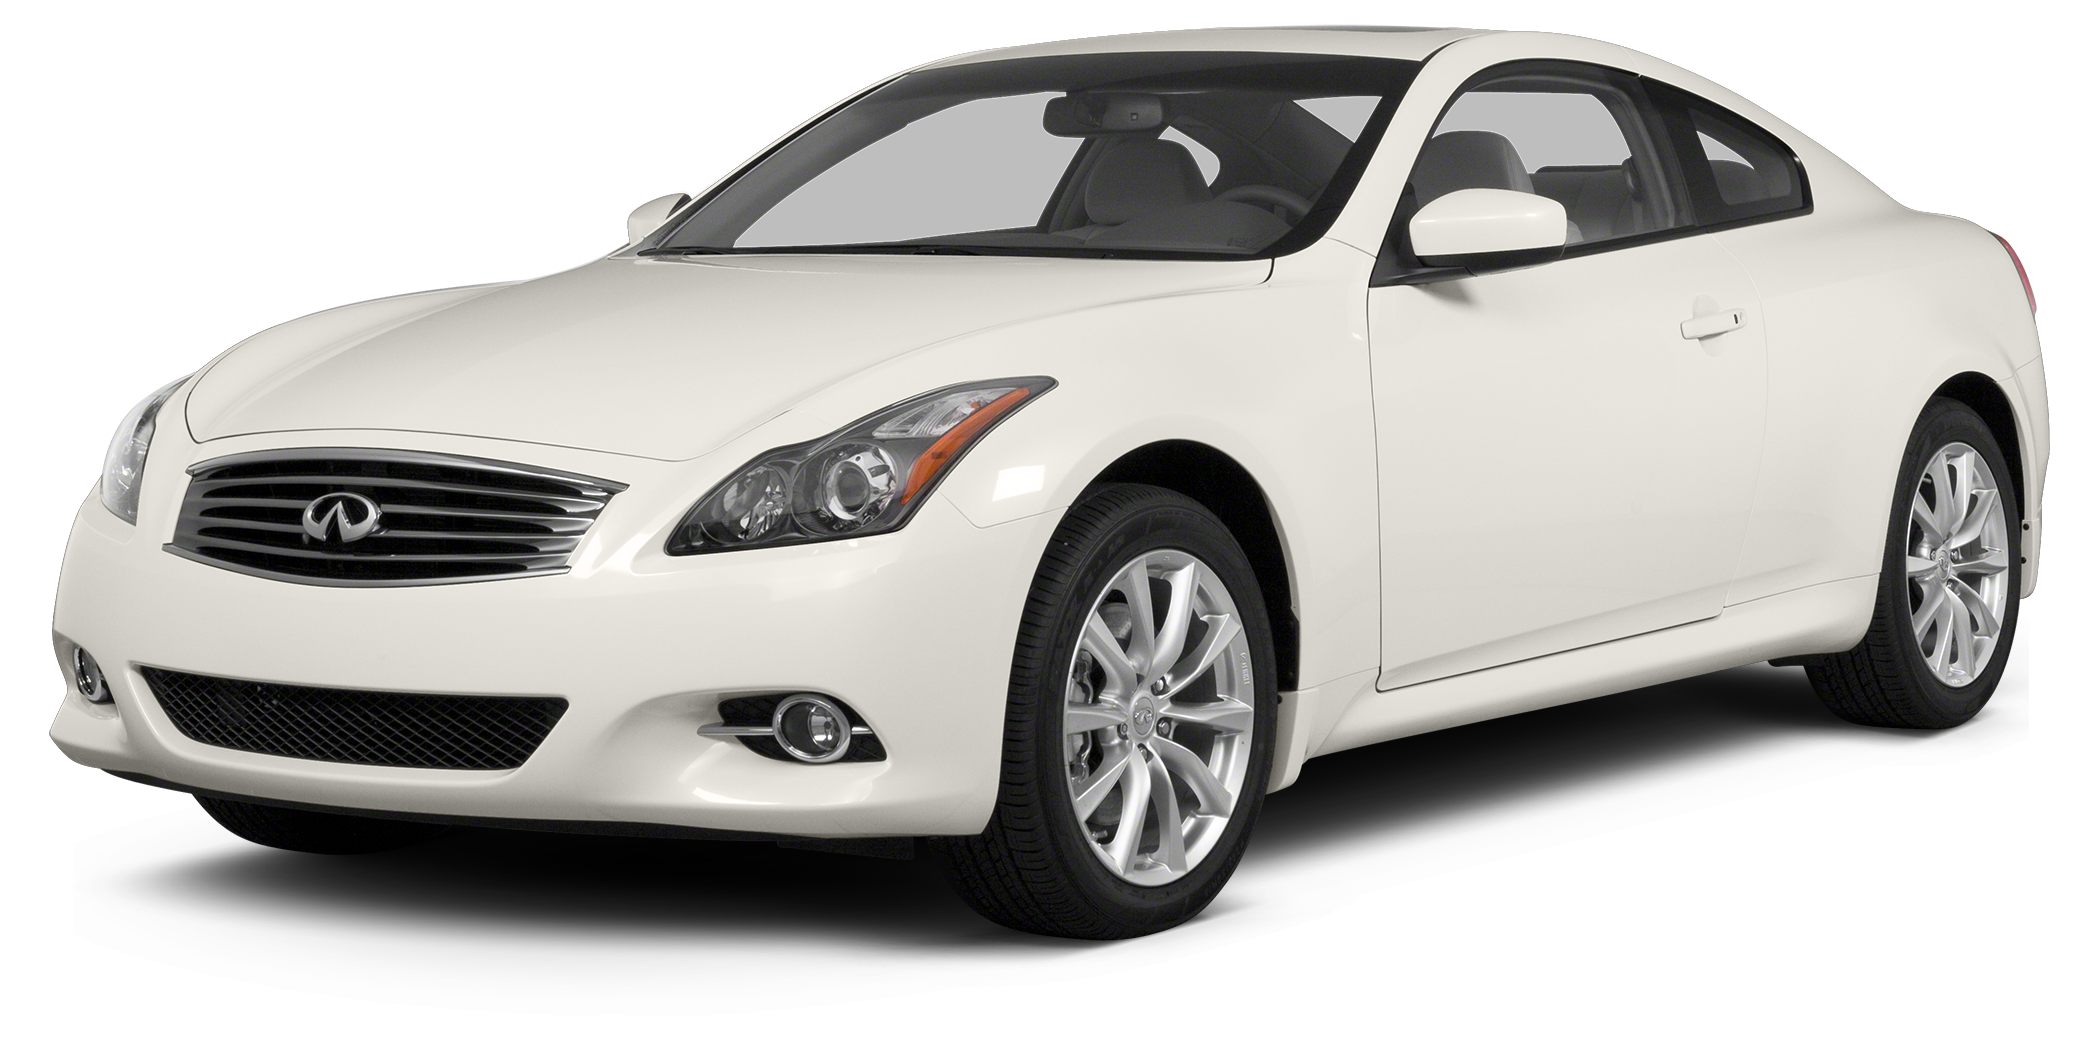 2013 Infiniti G37 Journey White G37 Coupe with Navigation Heated seats Backup Camera only 21k m